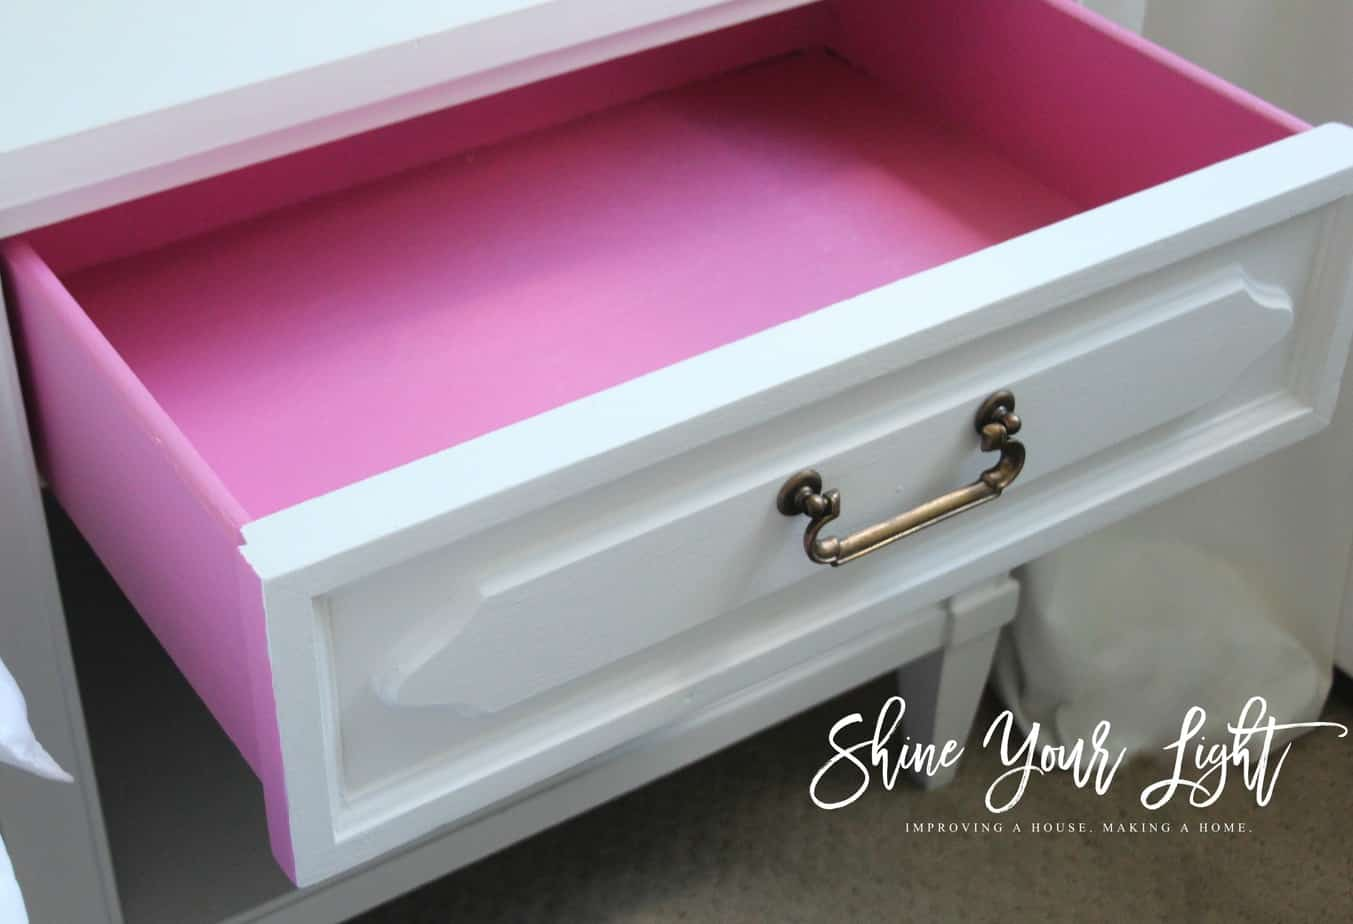 The inside of this thrifted bedside table is painted a fun hot pink.